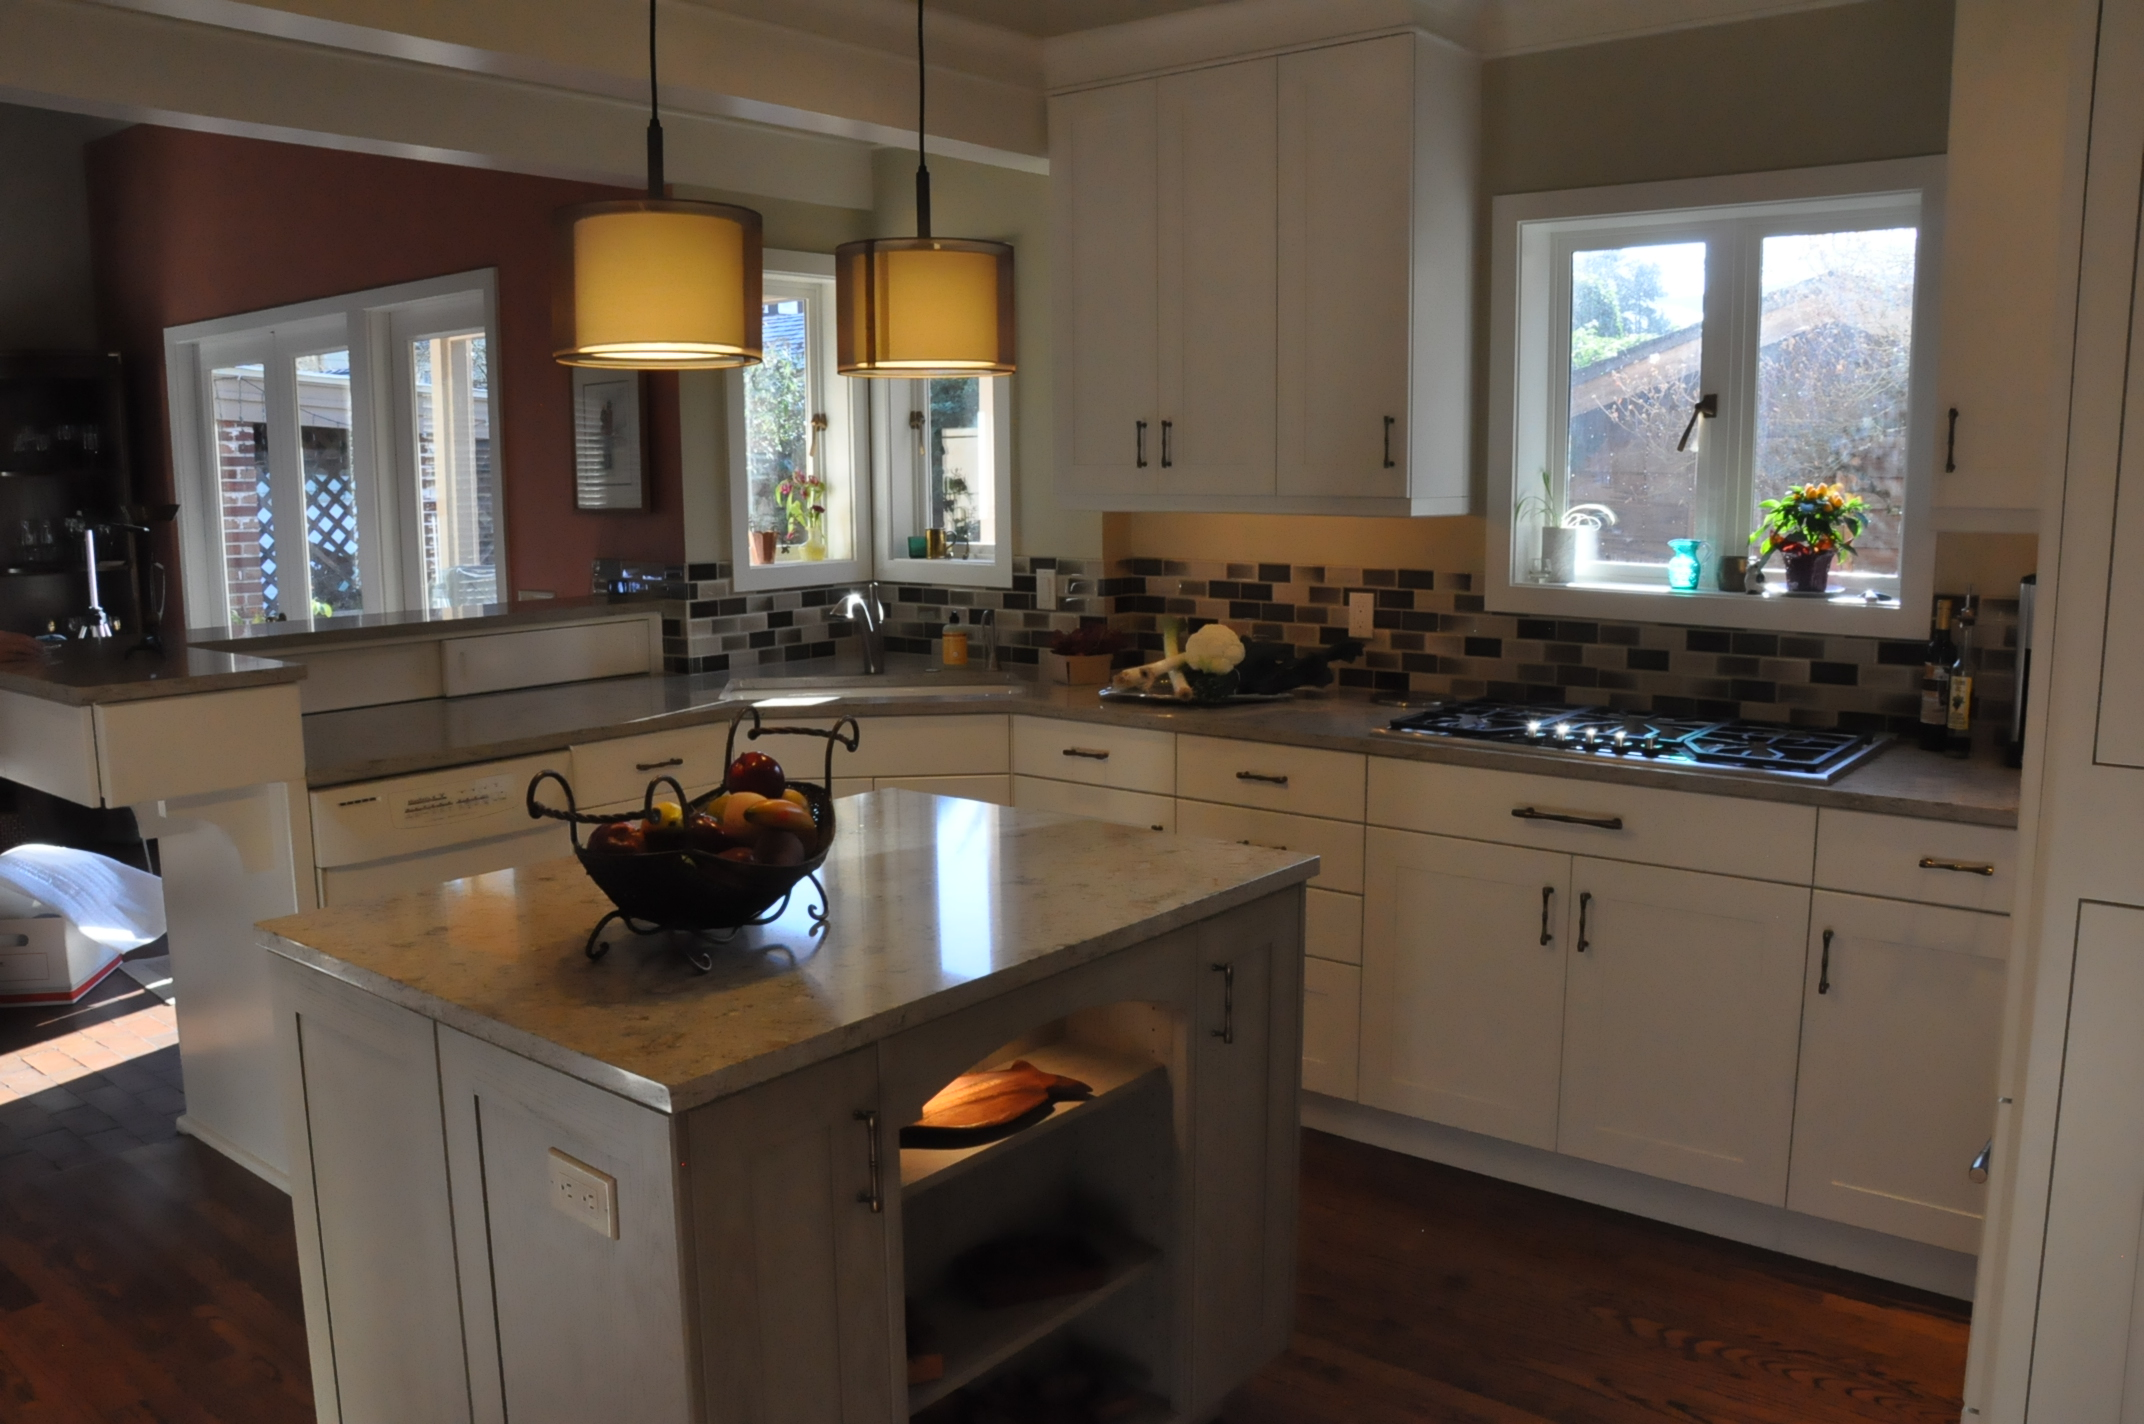 Transitional kitchen open to the family room